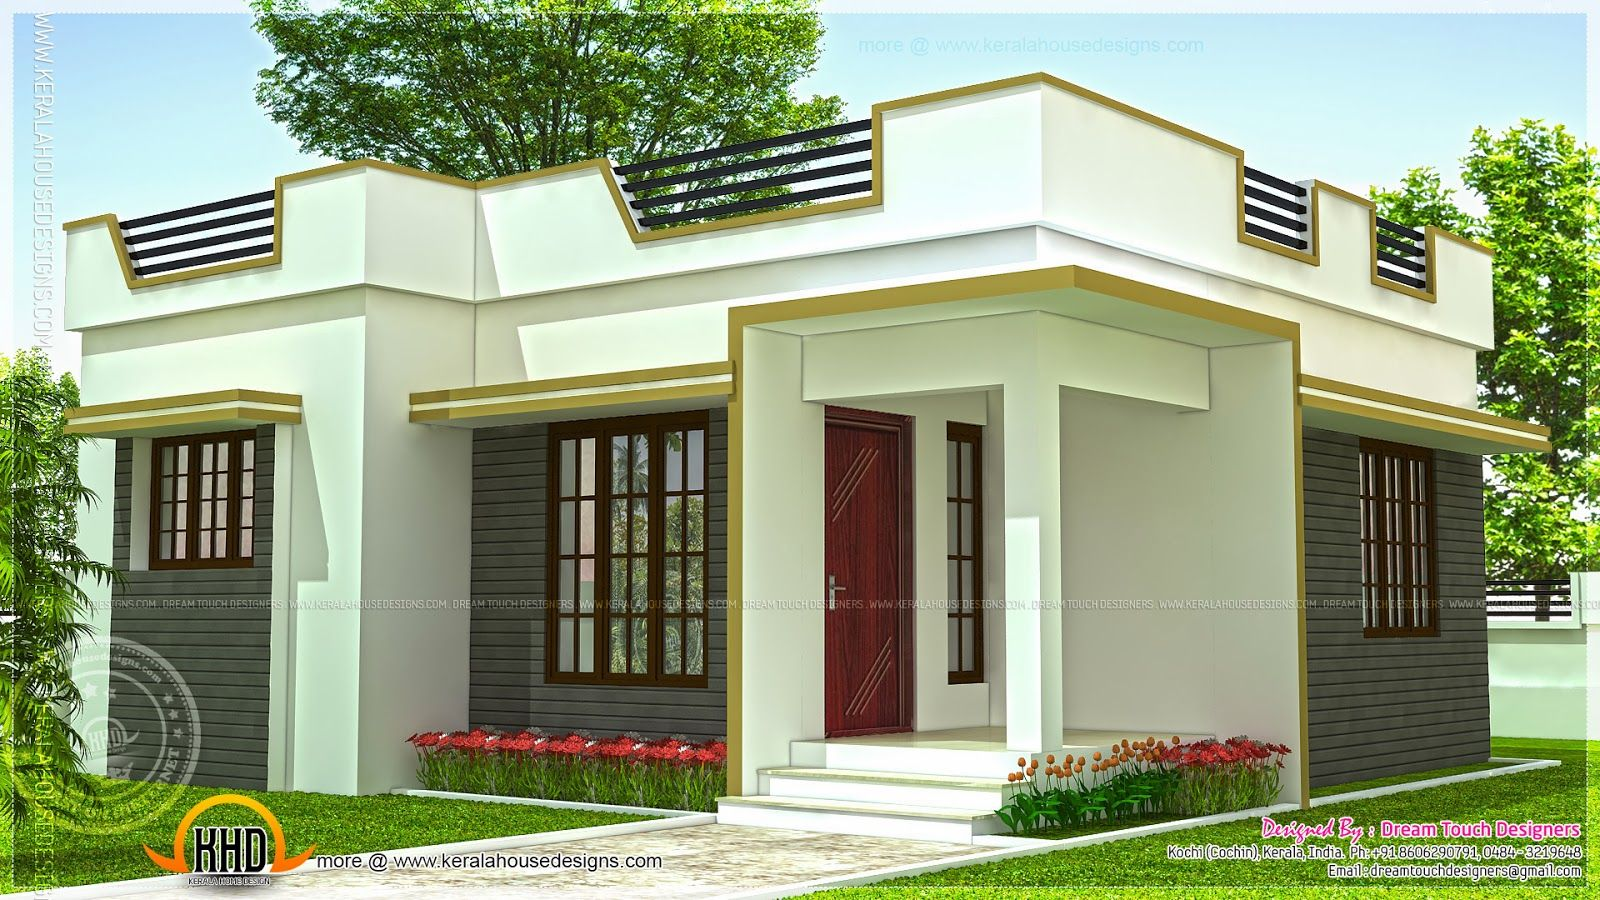 Lately 21 Small House Design Kerala Small House 1600 900 Best House Pinterest